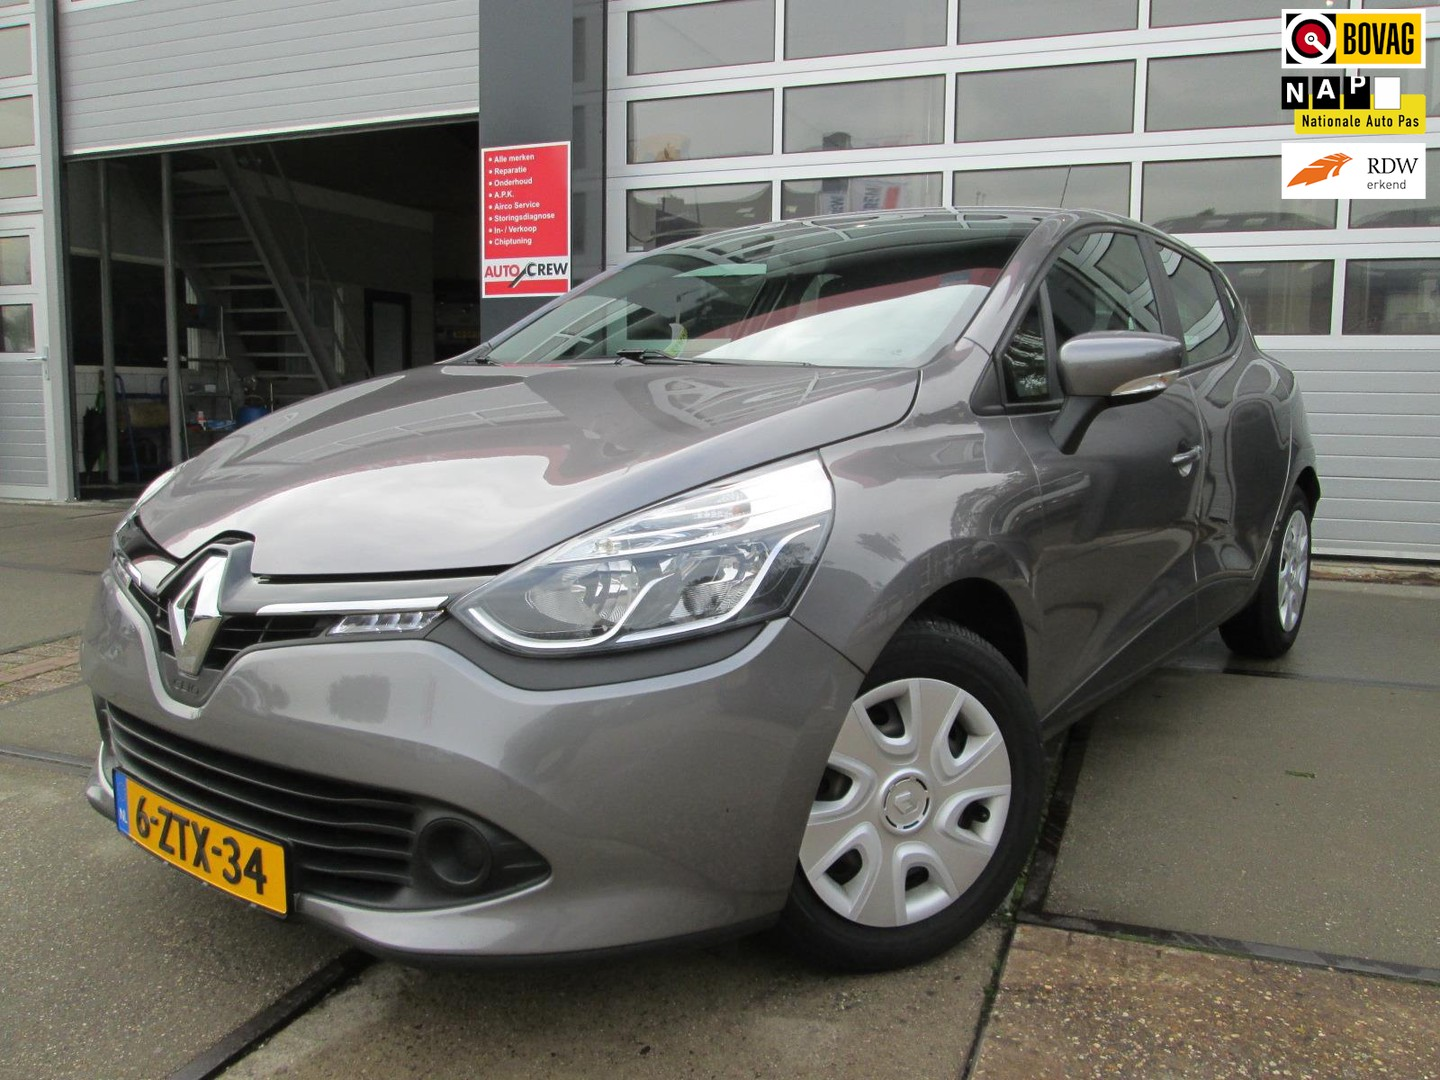 Renault Clio 0.9 tce expression / airco / navi